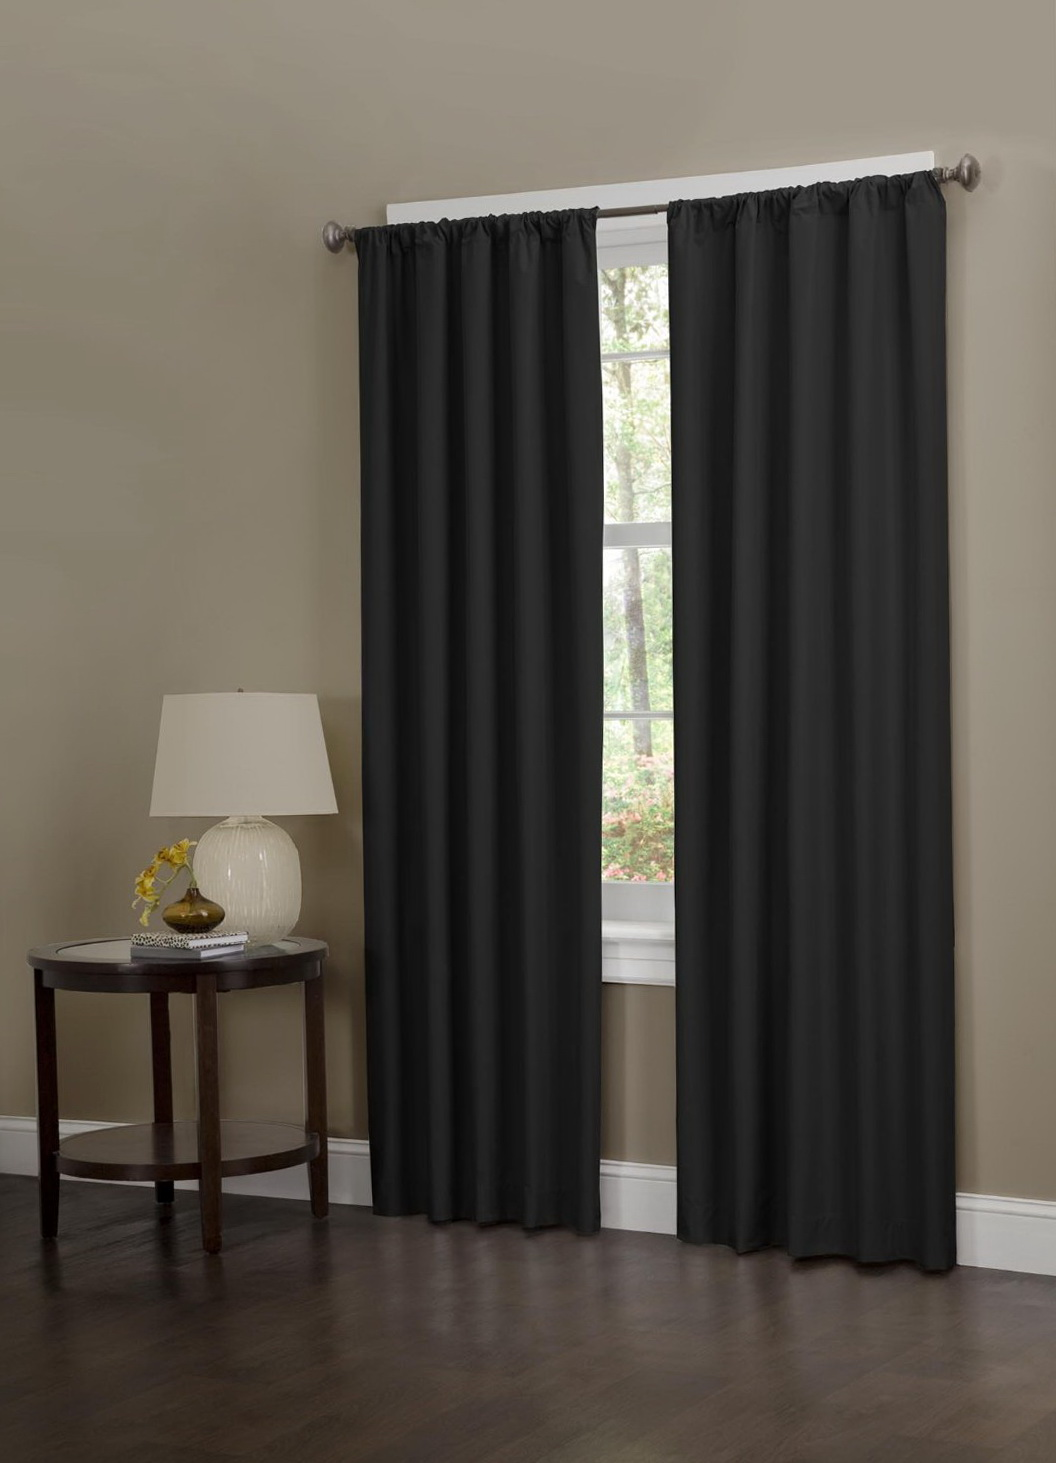 84 Inch Curtains Ikea Home Design Ideas